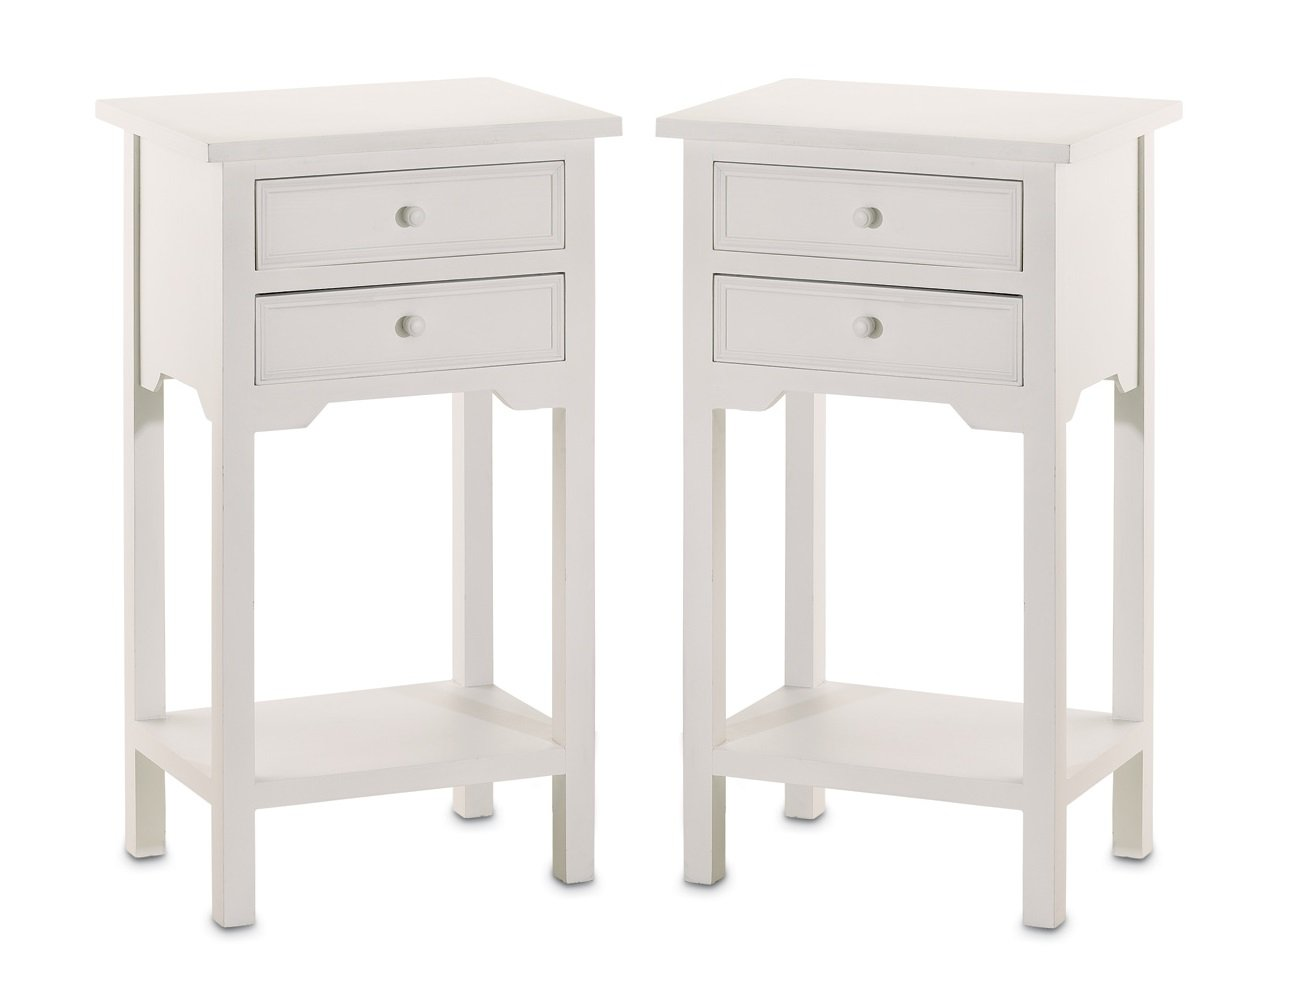 Amazon Set of 2 Wood White End Tables Nightstands with Two